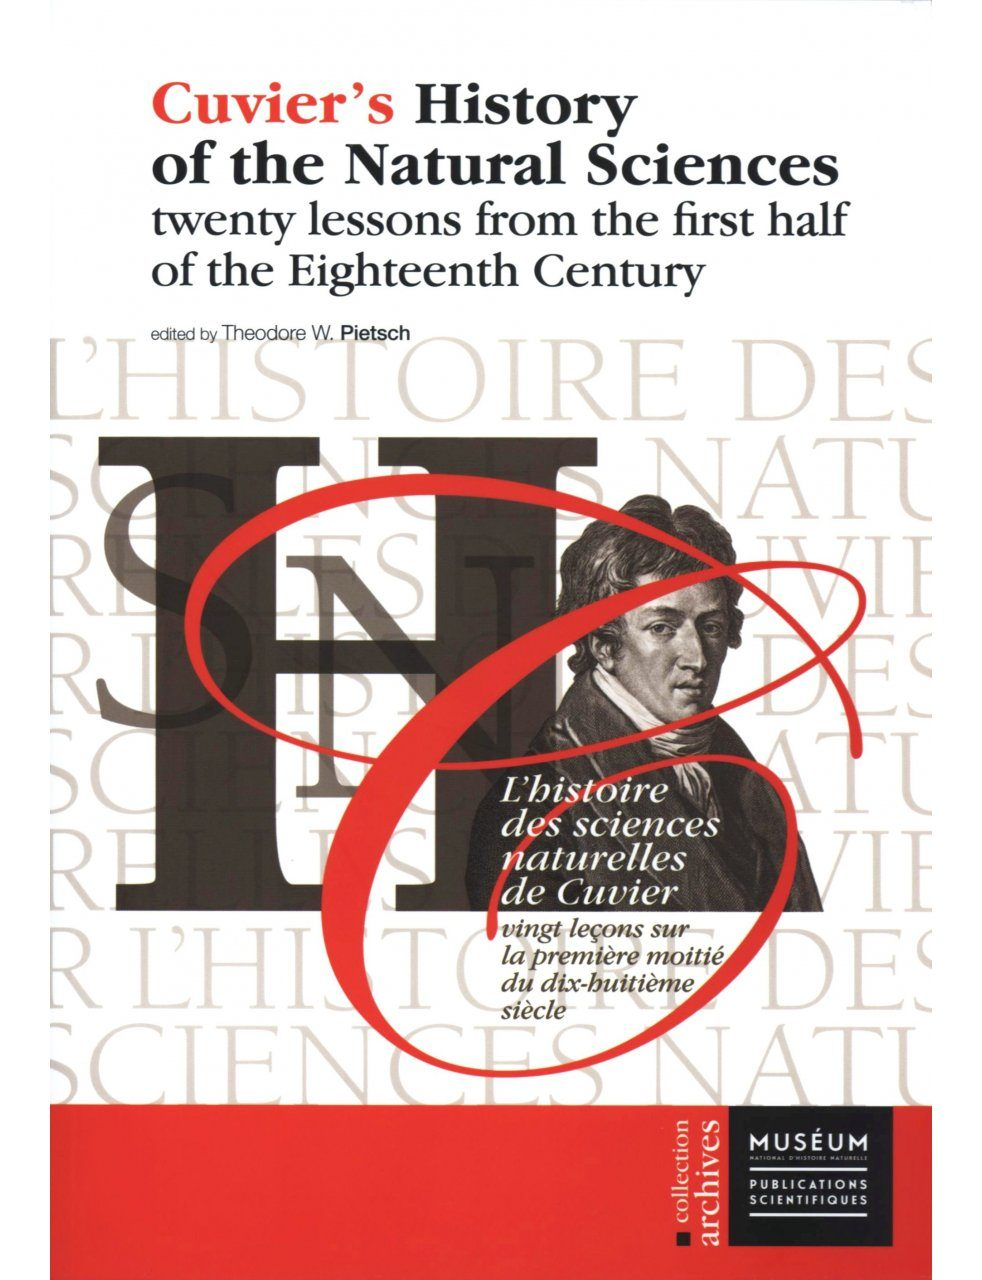 Cuvier's History of Natural Sciences, Volume 3 / L'Histoire des Sciences Naturelles de Cuvier, Volume 3